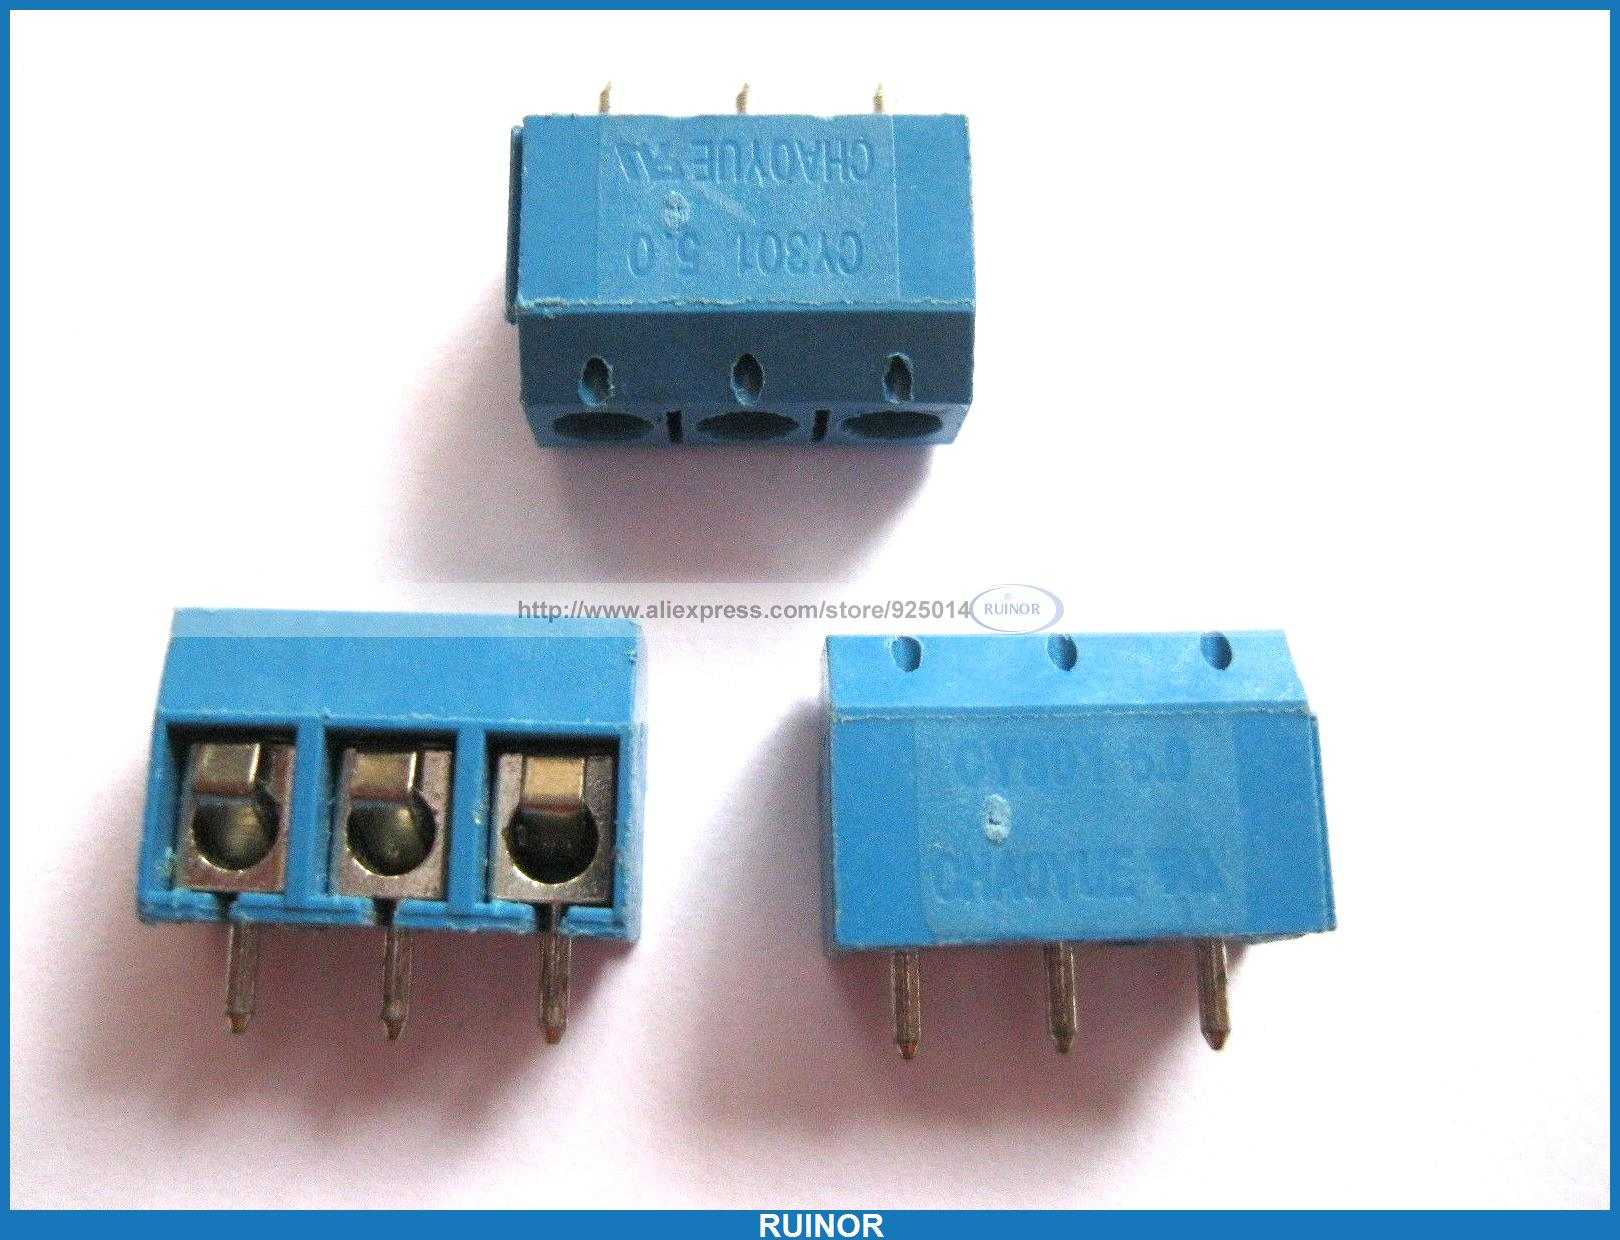 100 Pcs Blue 3 Pin Pitch 5 0mm Screw Terminal Block Connector CY301